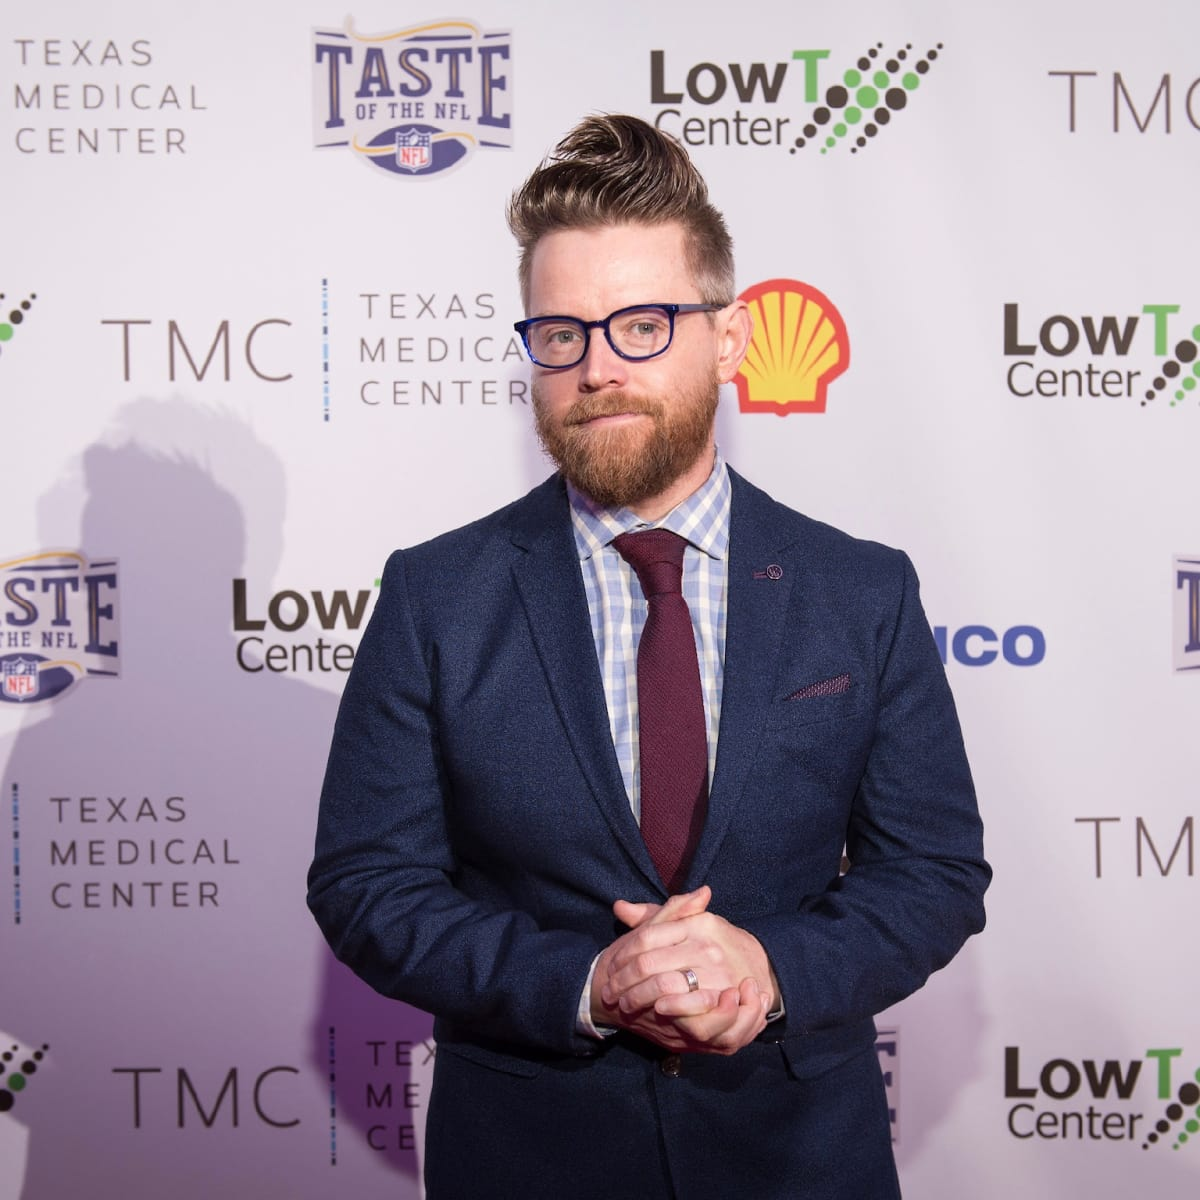 Taste of the NFL Richard Blais